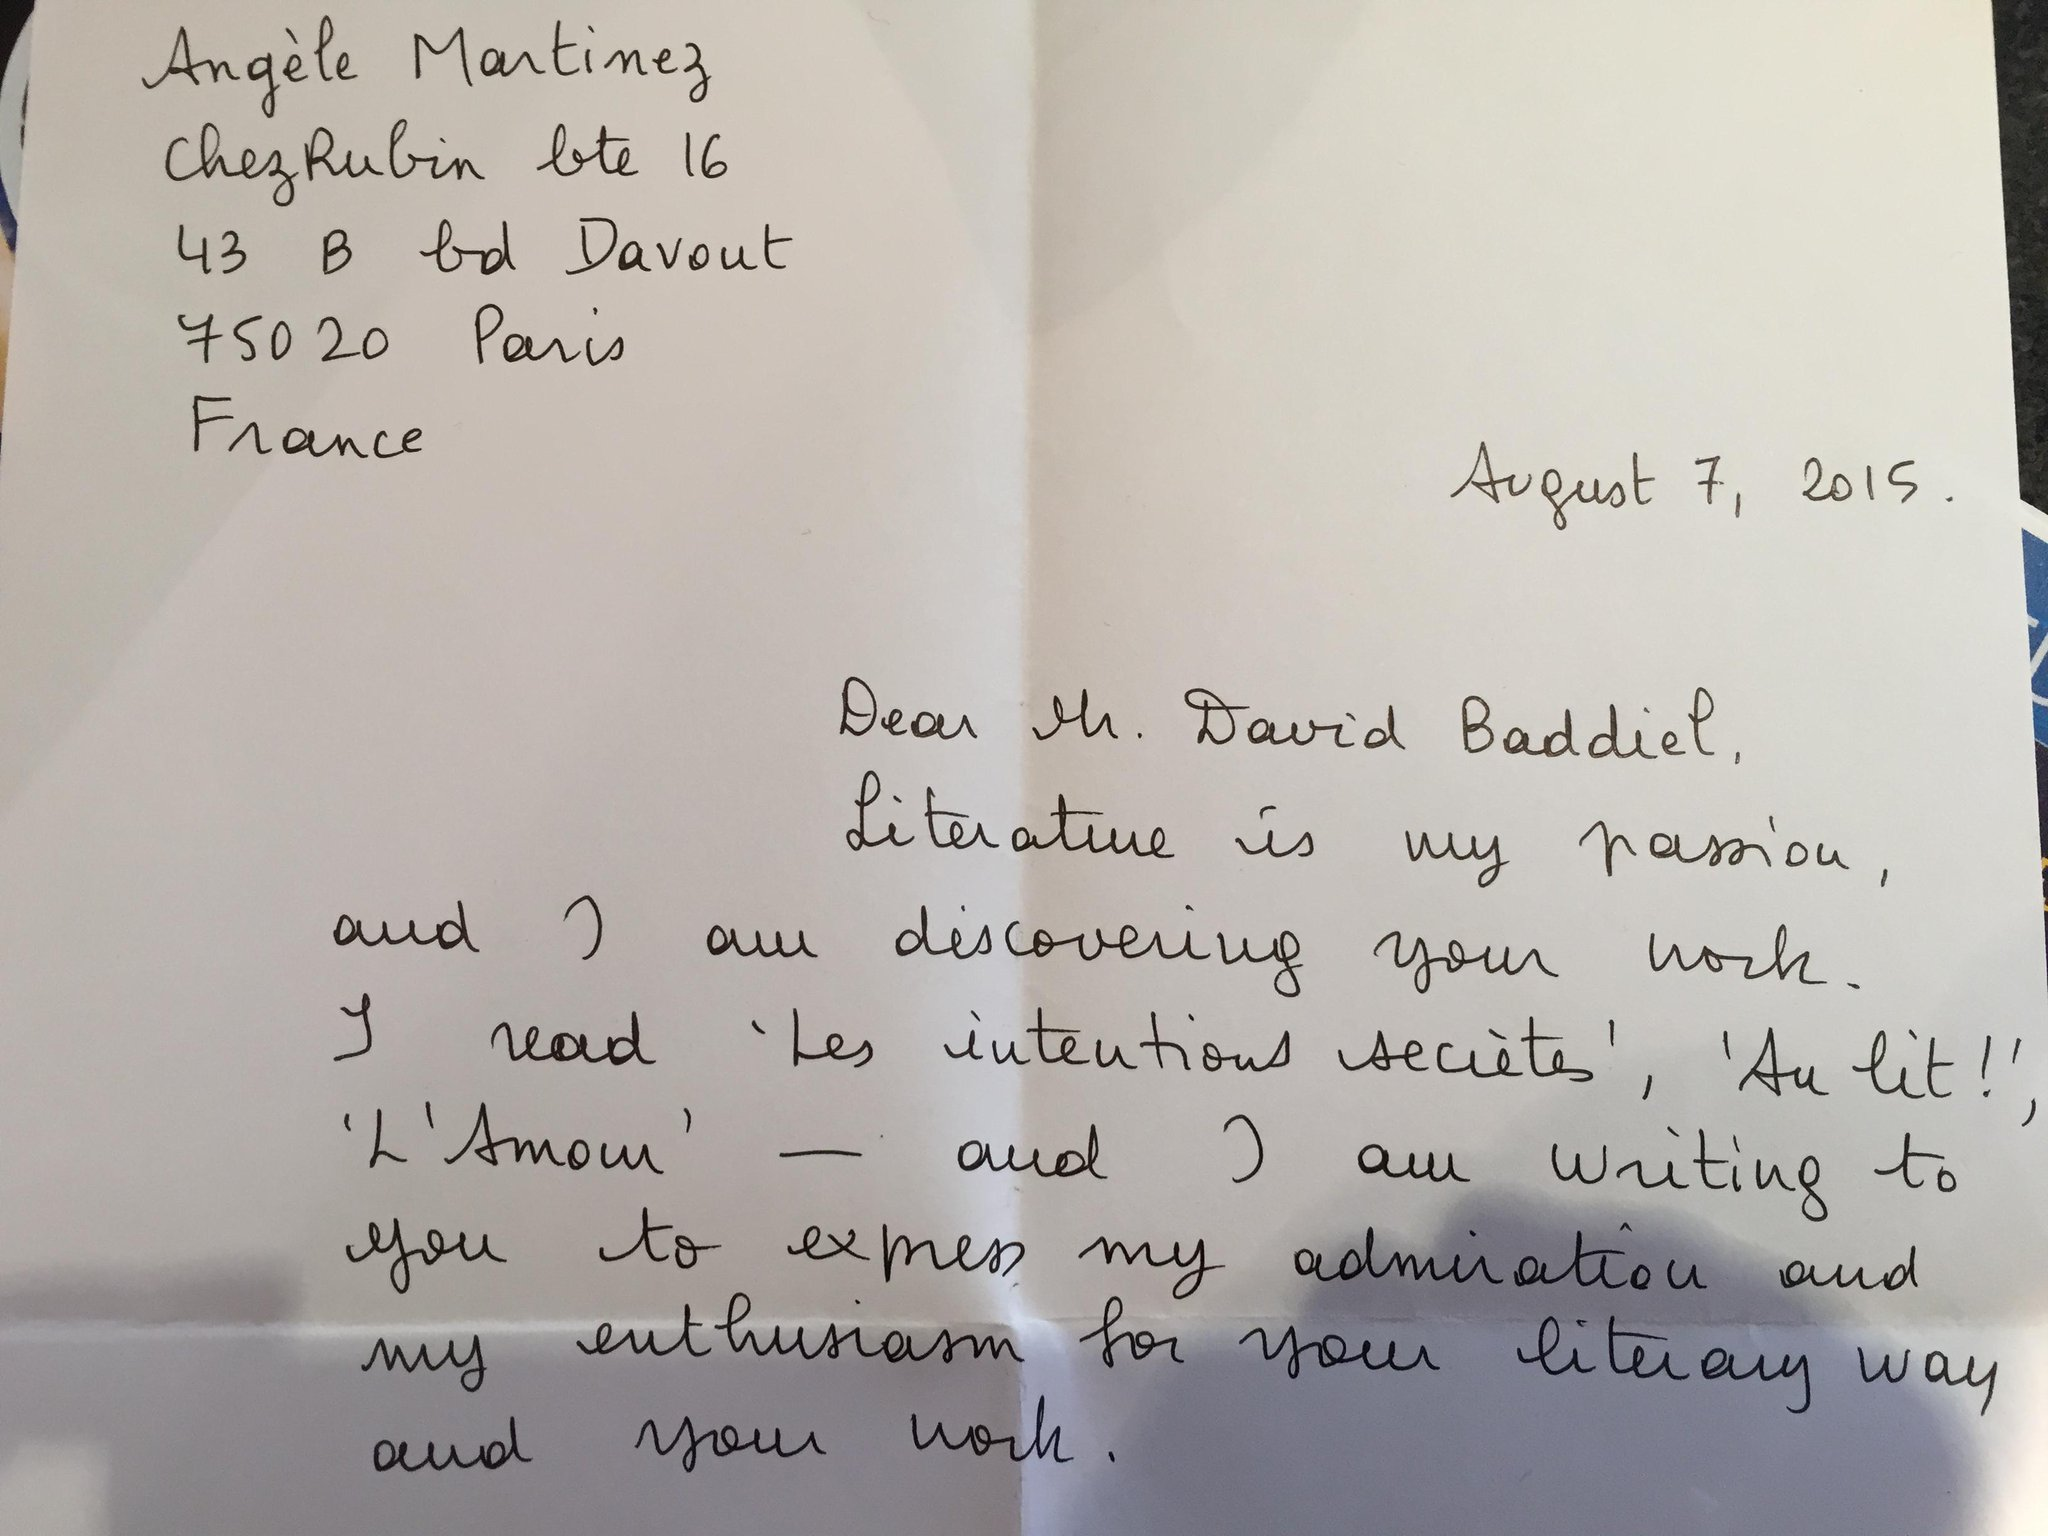 Received this French literary fan letter this morning. Only it seems to be something else...https://t.co/uHxGOIkDmd http://t.co/c7yvyY5U72